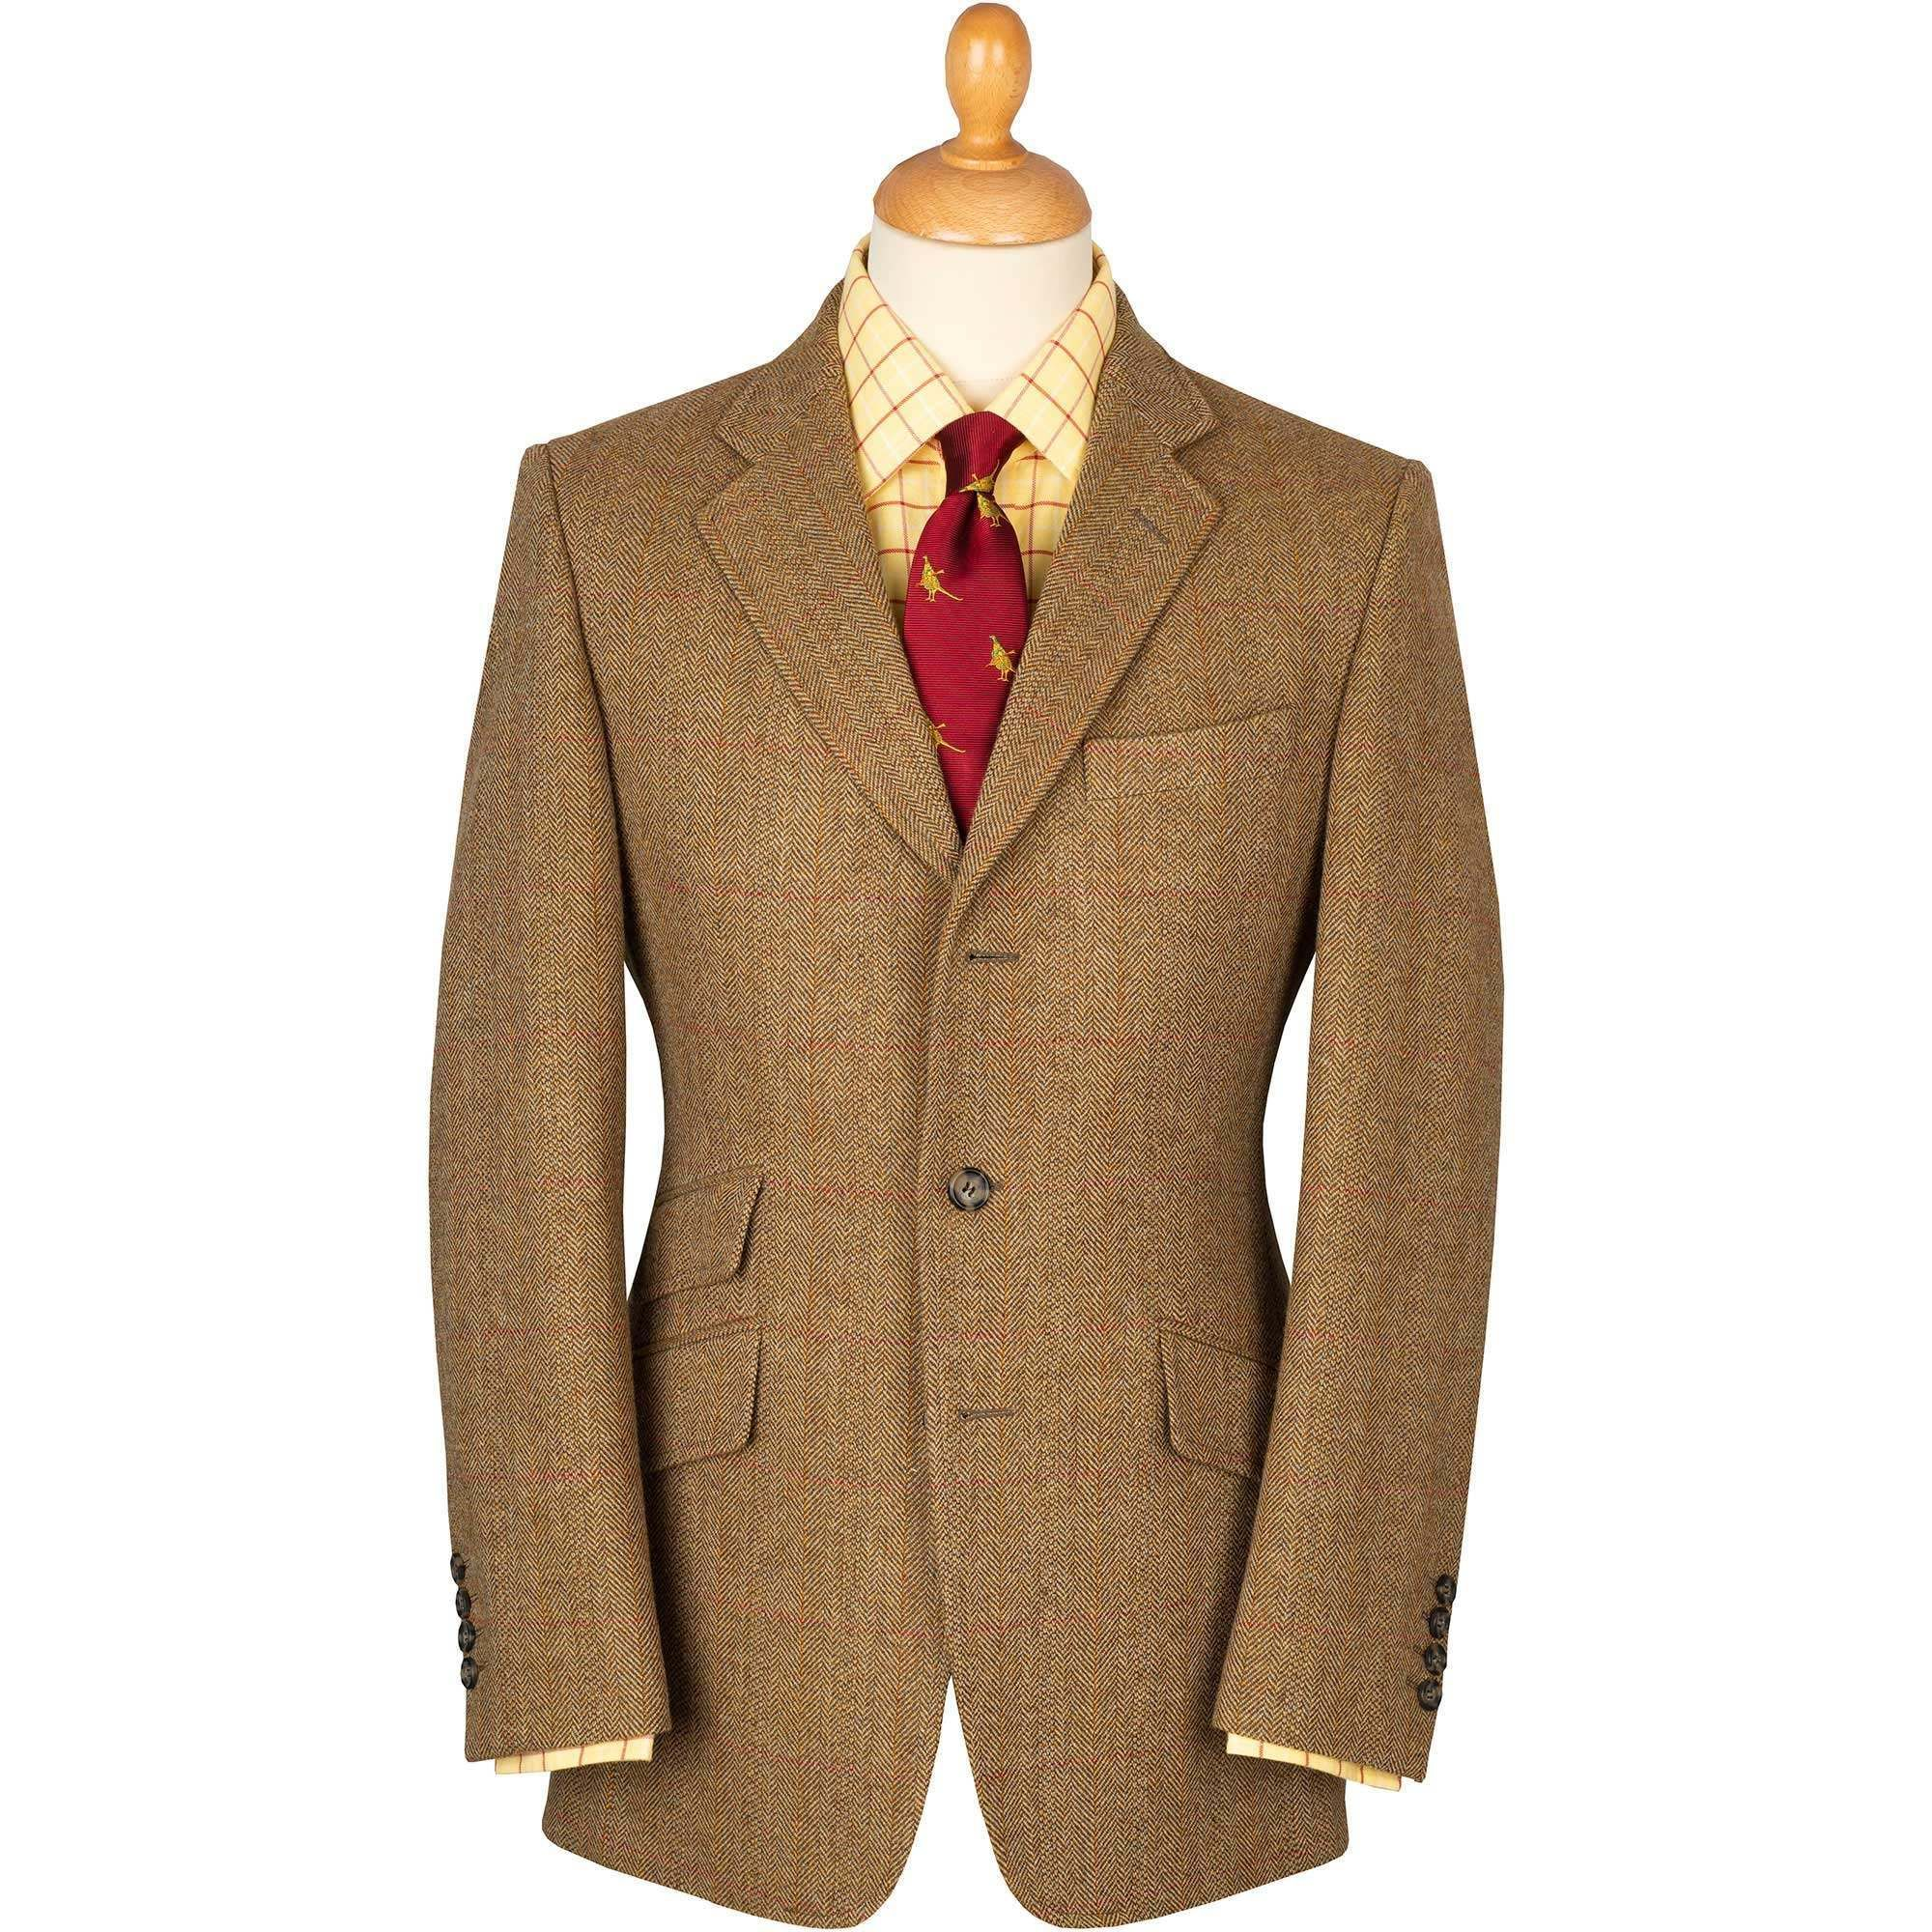 Barleycorn Tweed Jacket Men S Country Clothing Cordings